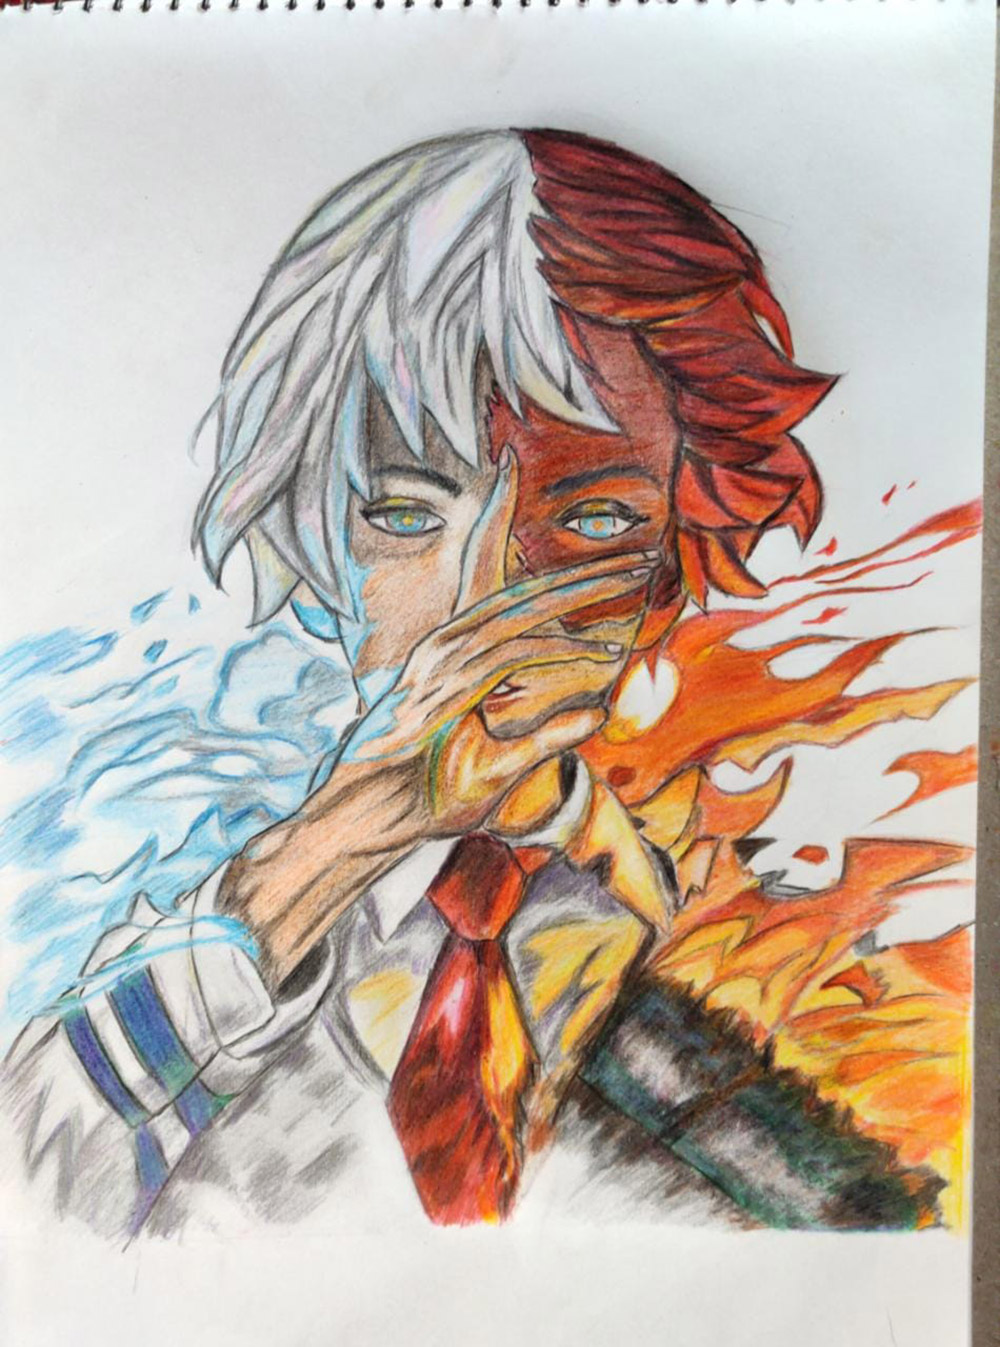 """Todoroki Shoto Color Pencil Art"" by Shambaditya Sarka"